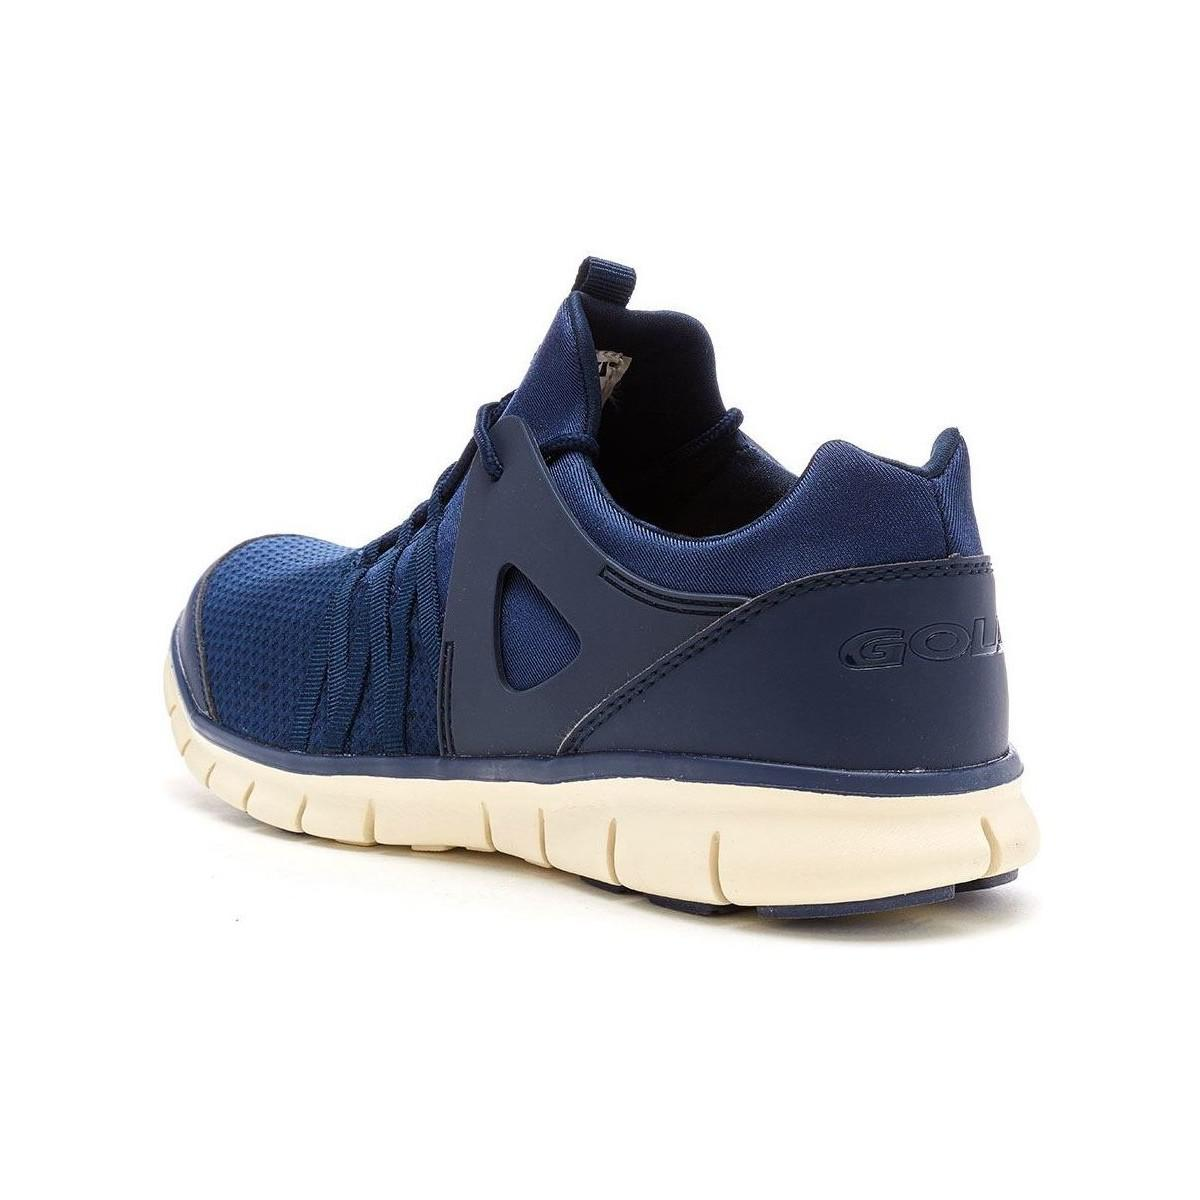 Gola  Gola Akita Trainers In Navy Blue Off White Ama758ew Men's Shoes  trainers  View Fullscreen